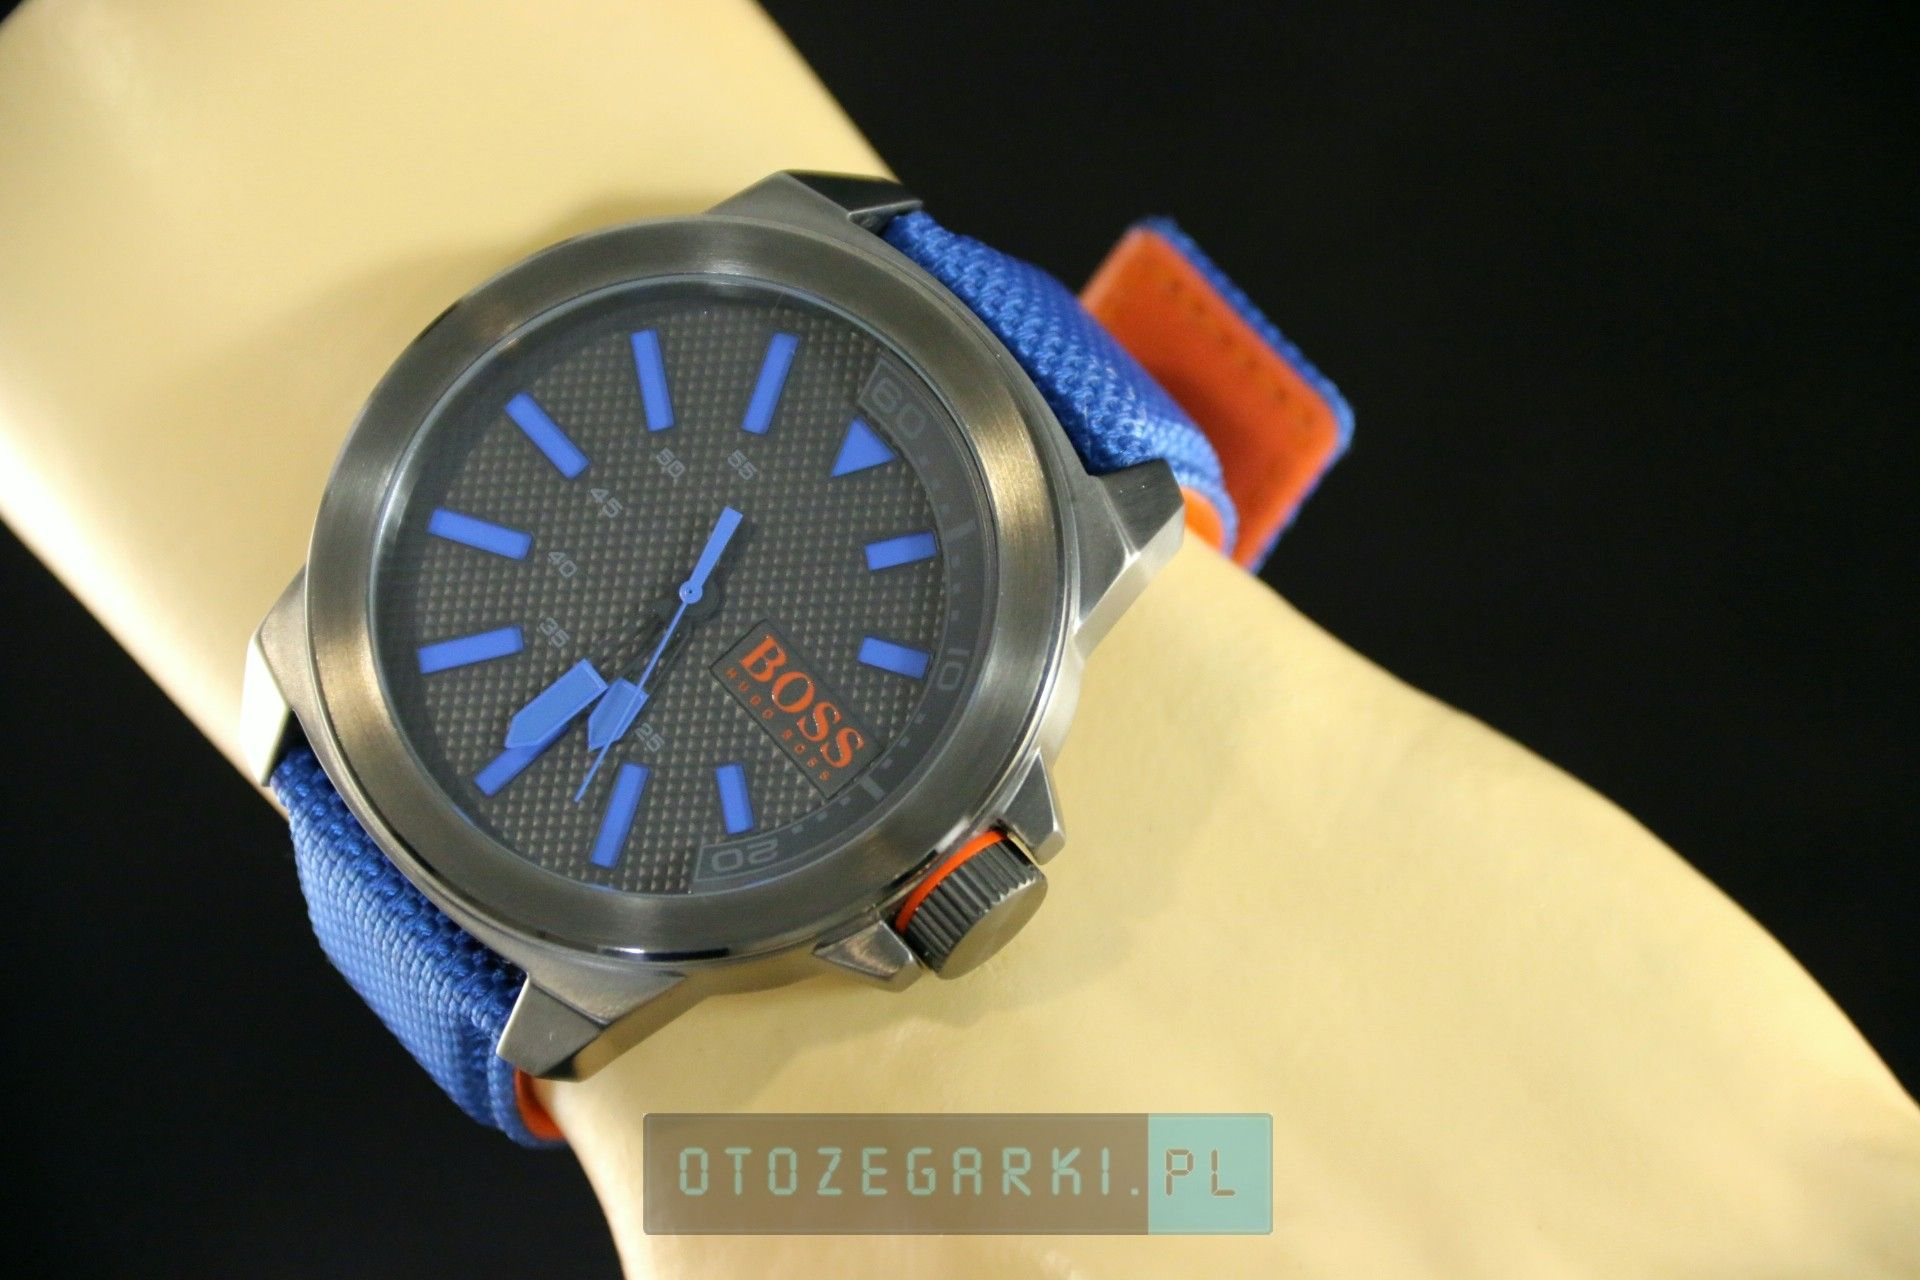 b080e9c434f0f Hugo Boss 1513008 - Zegarek Męski Hugo Boss Orange New York - 534,00 ...